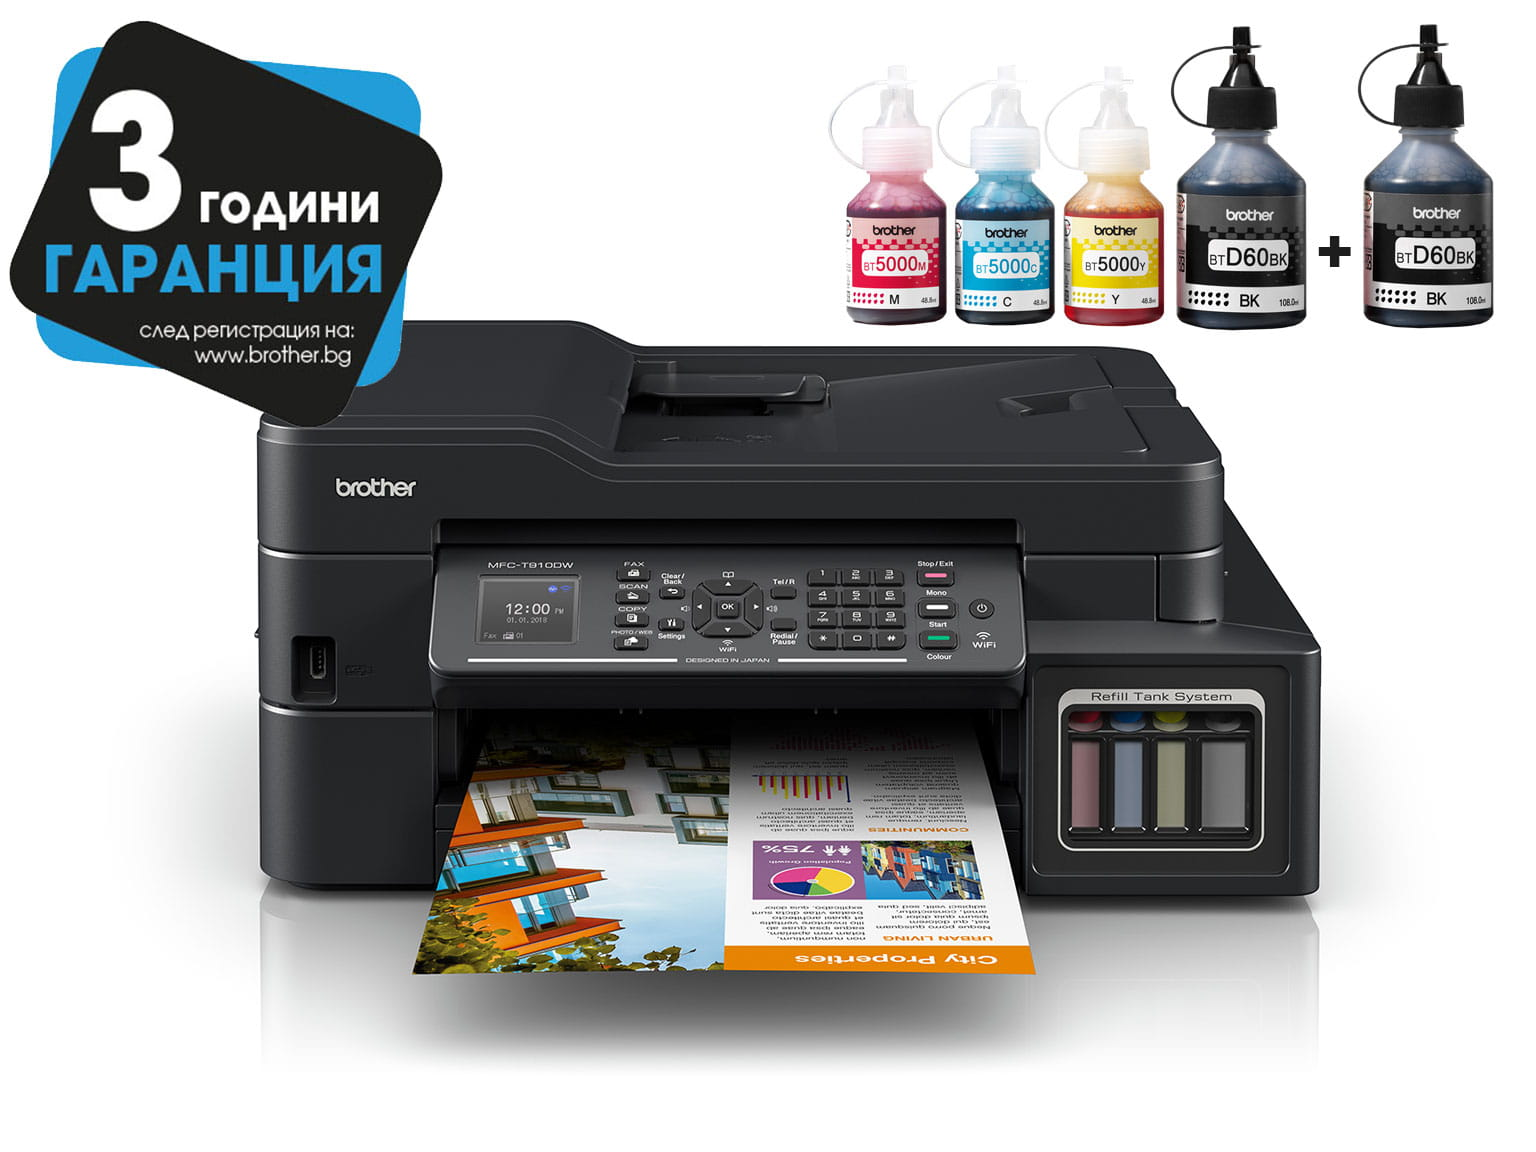 Brother InkBenefit Plus inkjet printer MFC-T910DW with 3YW logotype and ink bottles